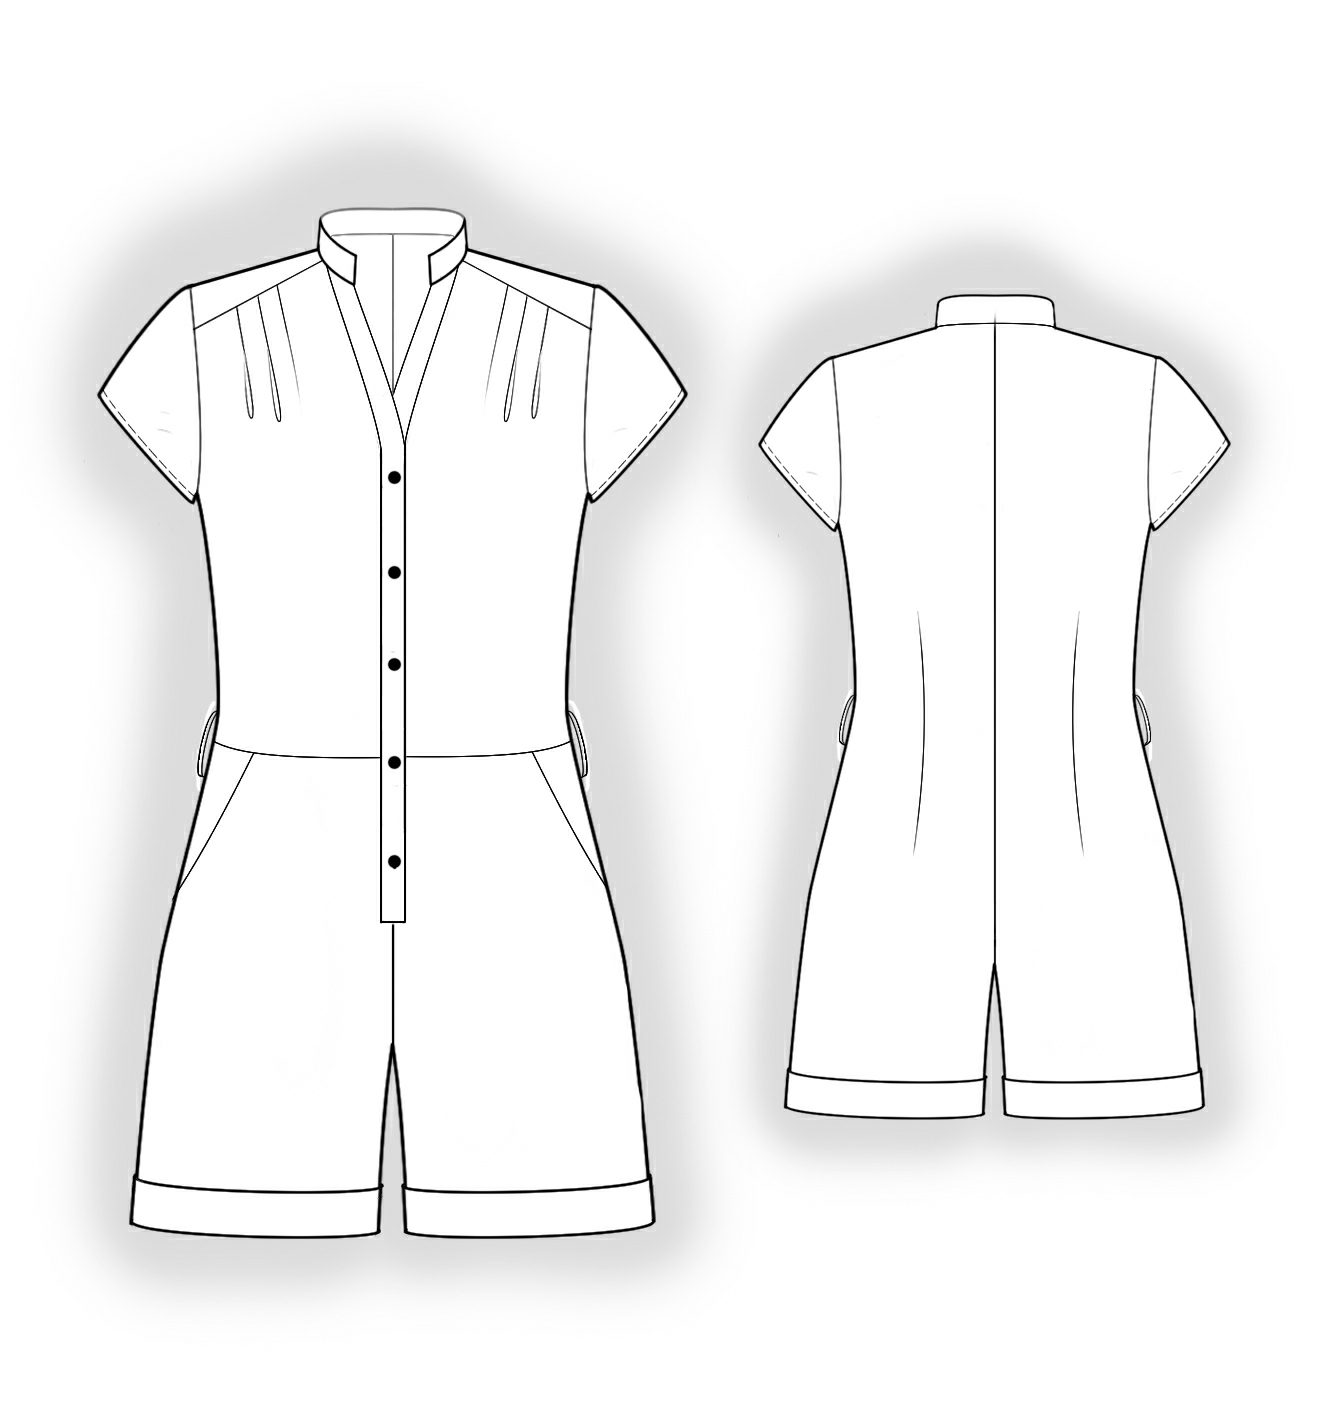 One-Piecer - Sewing Pattern #4053. Made-to-measure sewing pattern ...